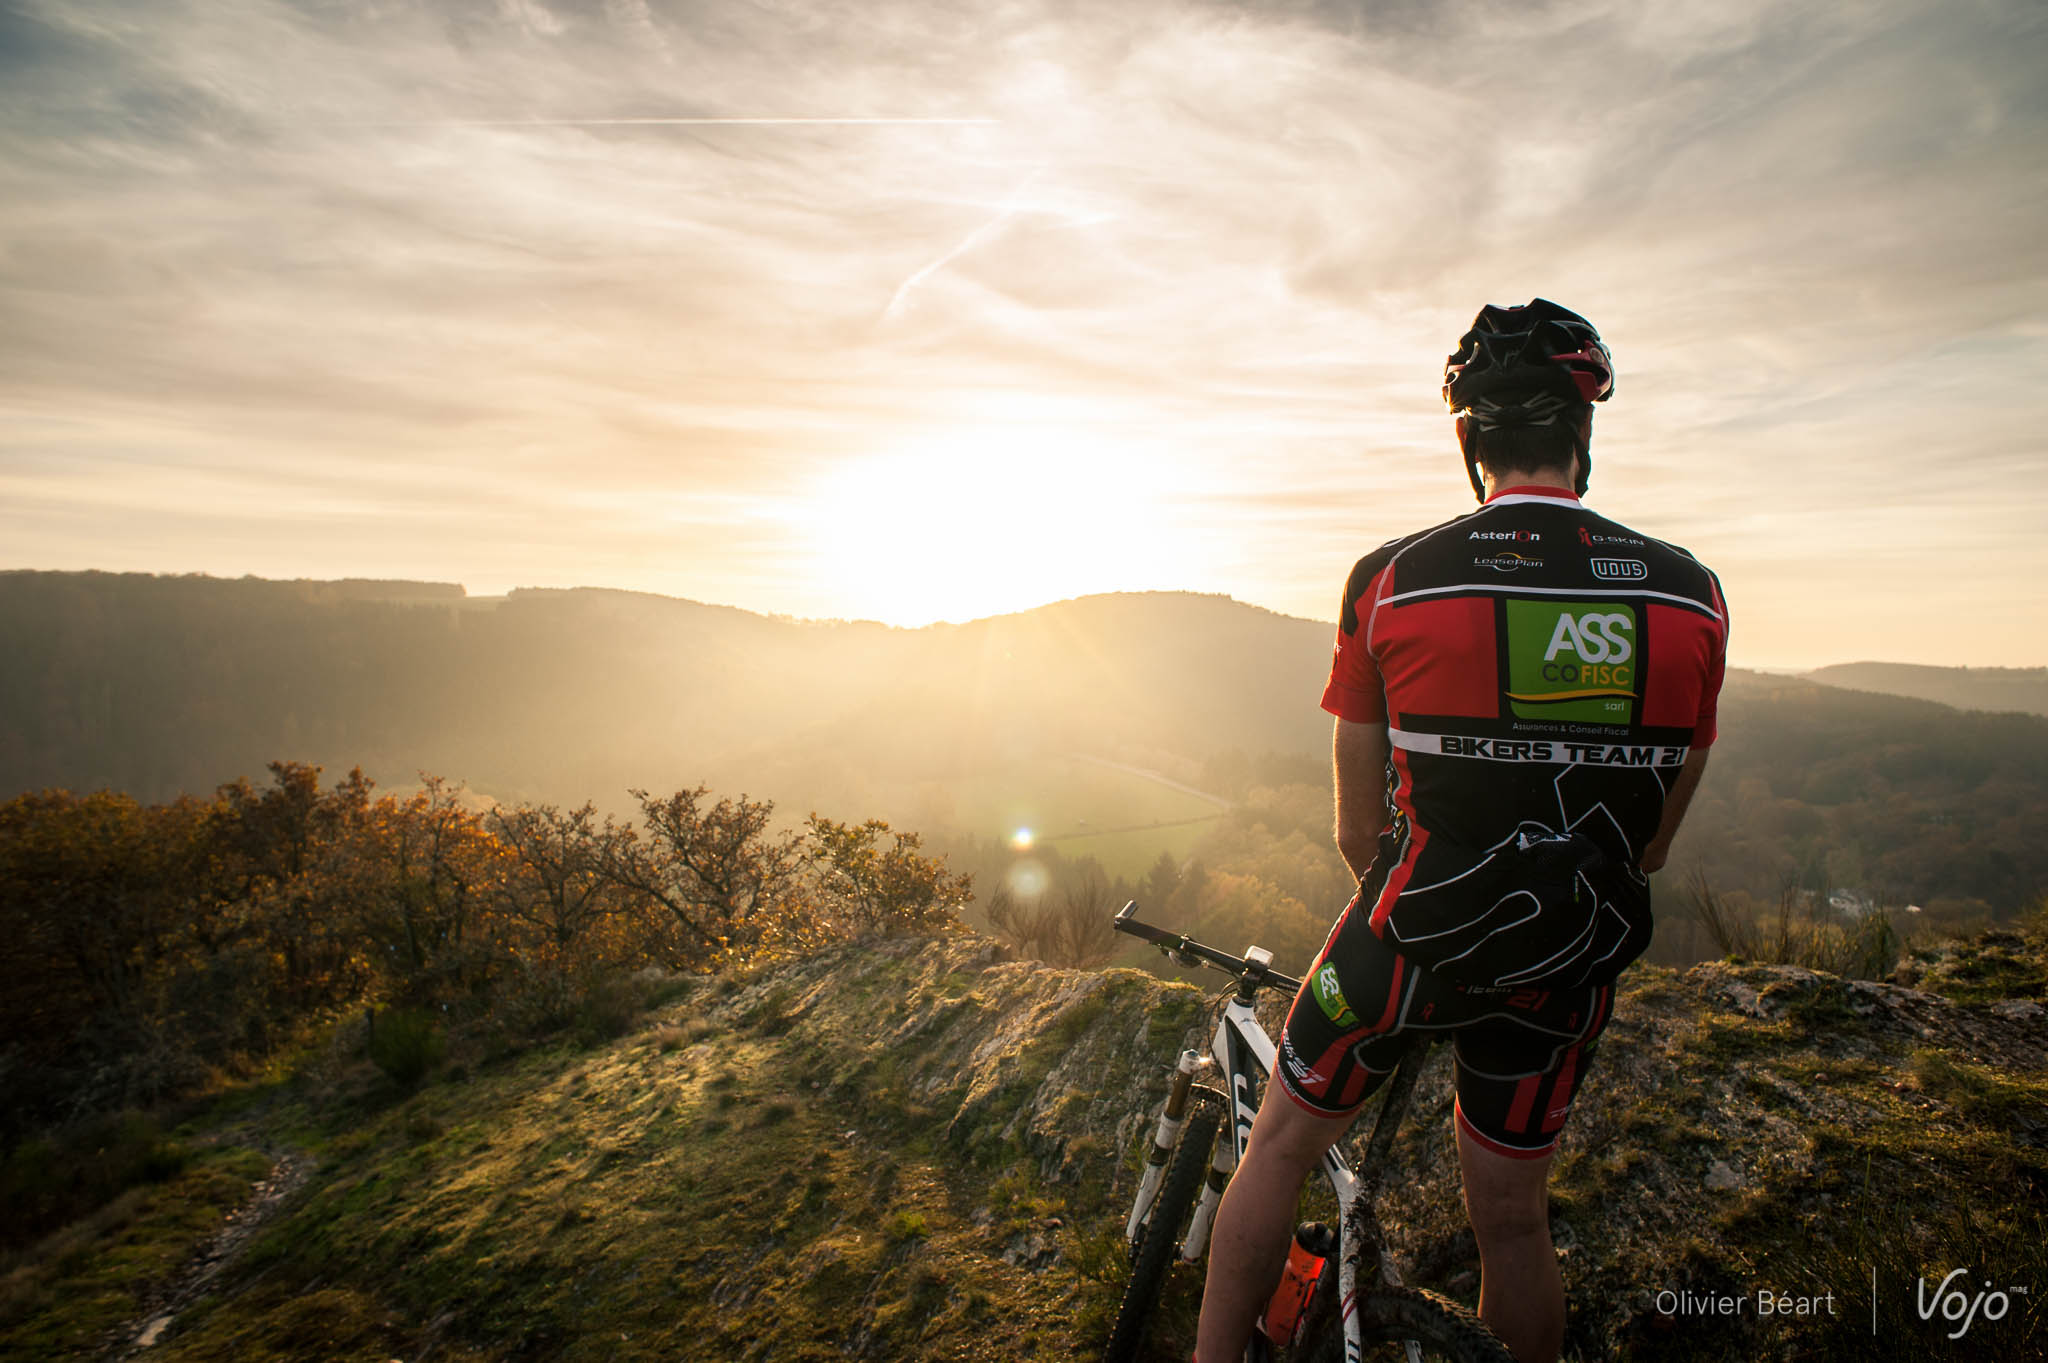 Vallée_Sure_Luxembourg_EpicBikersTeam21_Copyright_OBeart_VojoMag-1